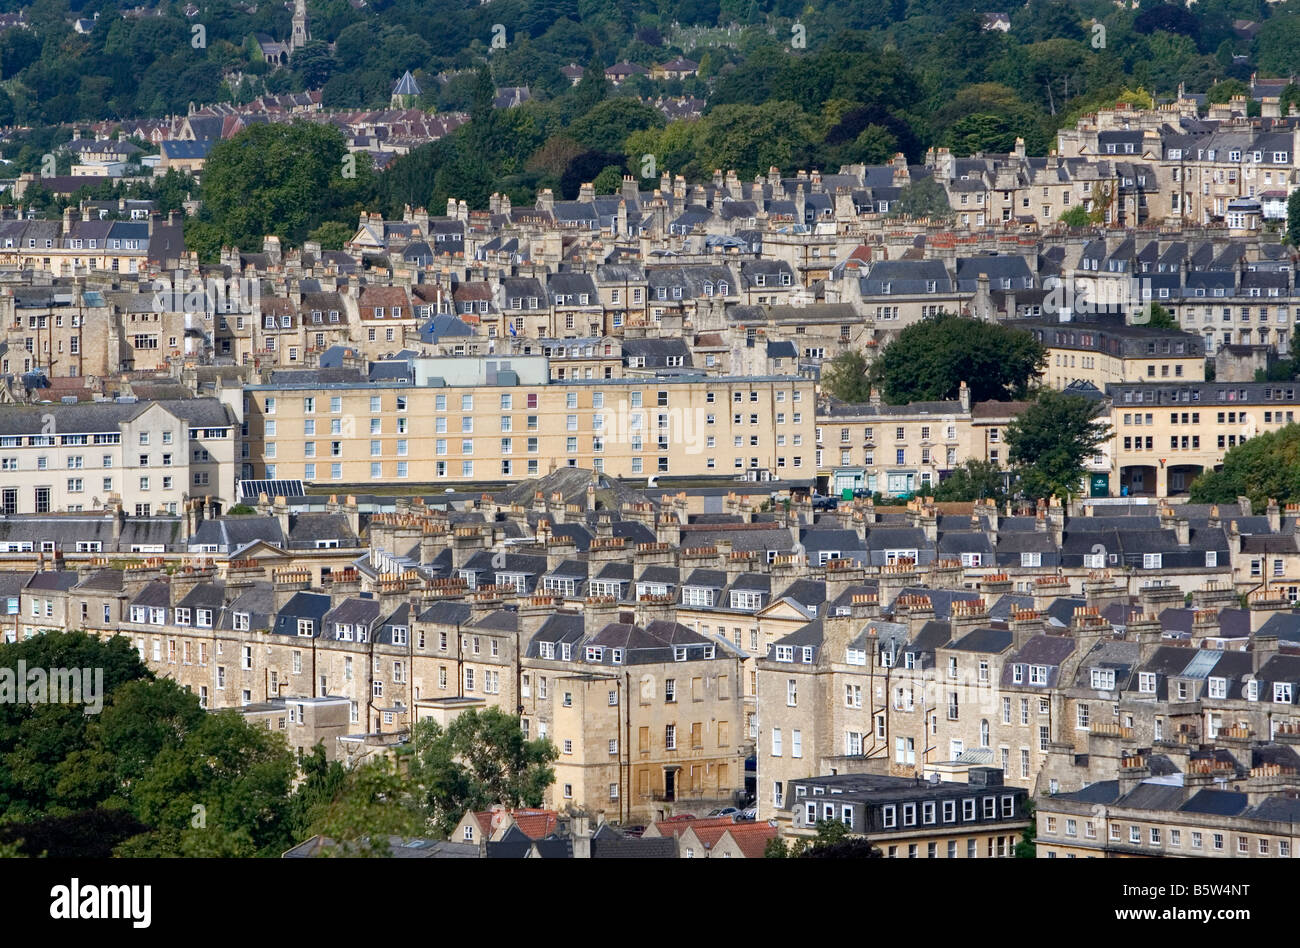 An Overview Of The City Of Bath Somerset England